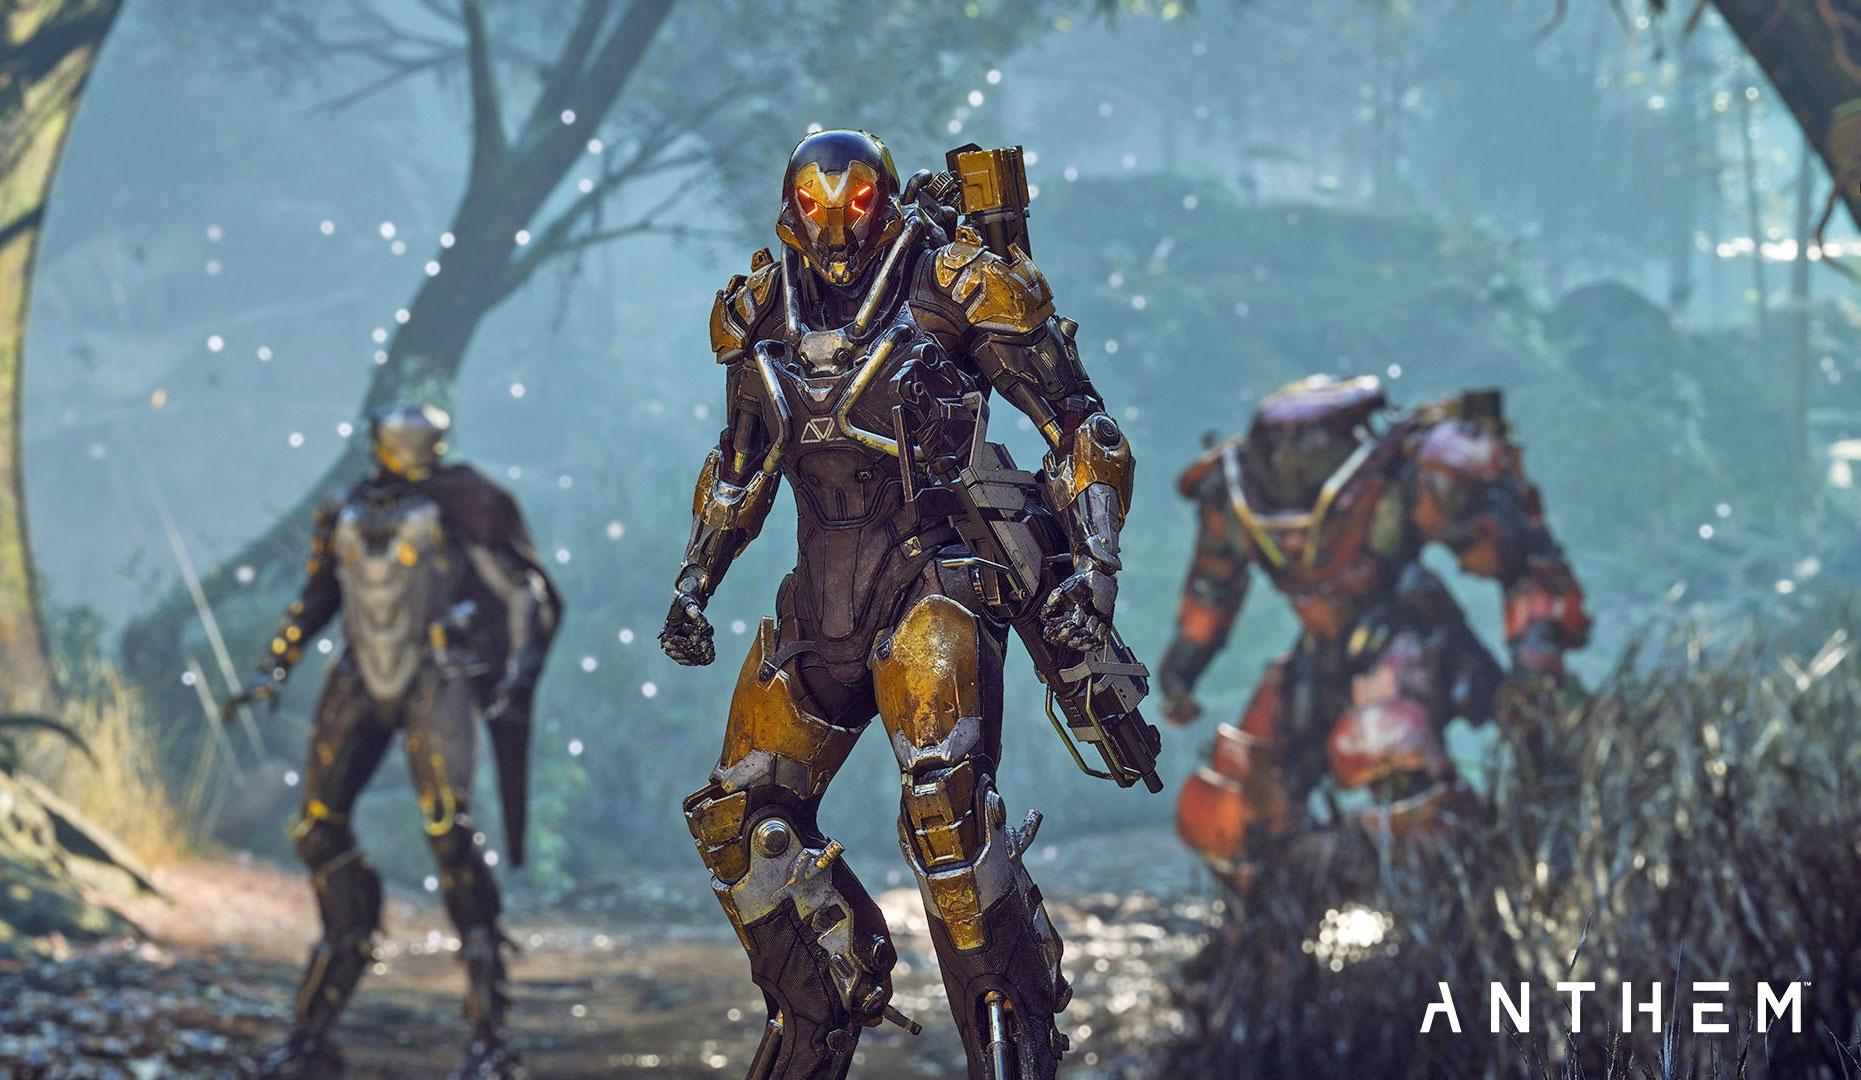 EA may have its haters but Anthem could win back some fans